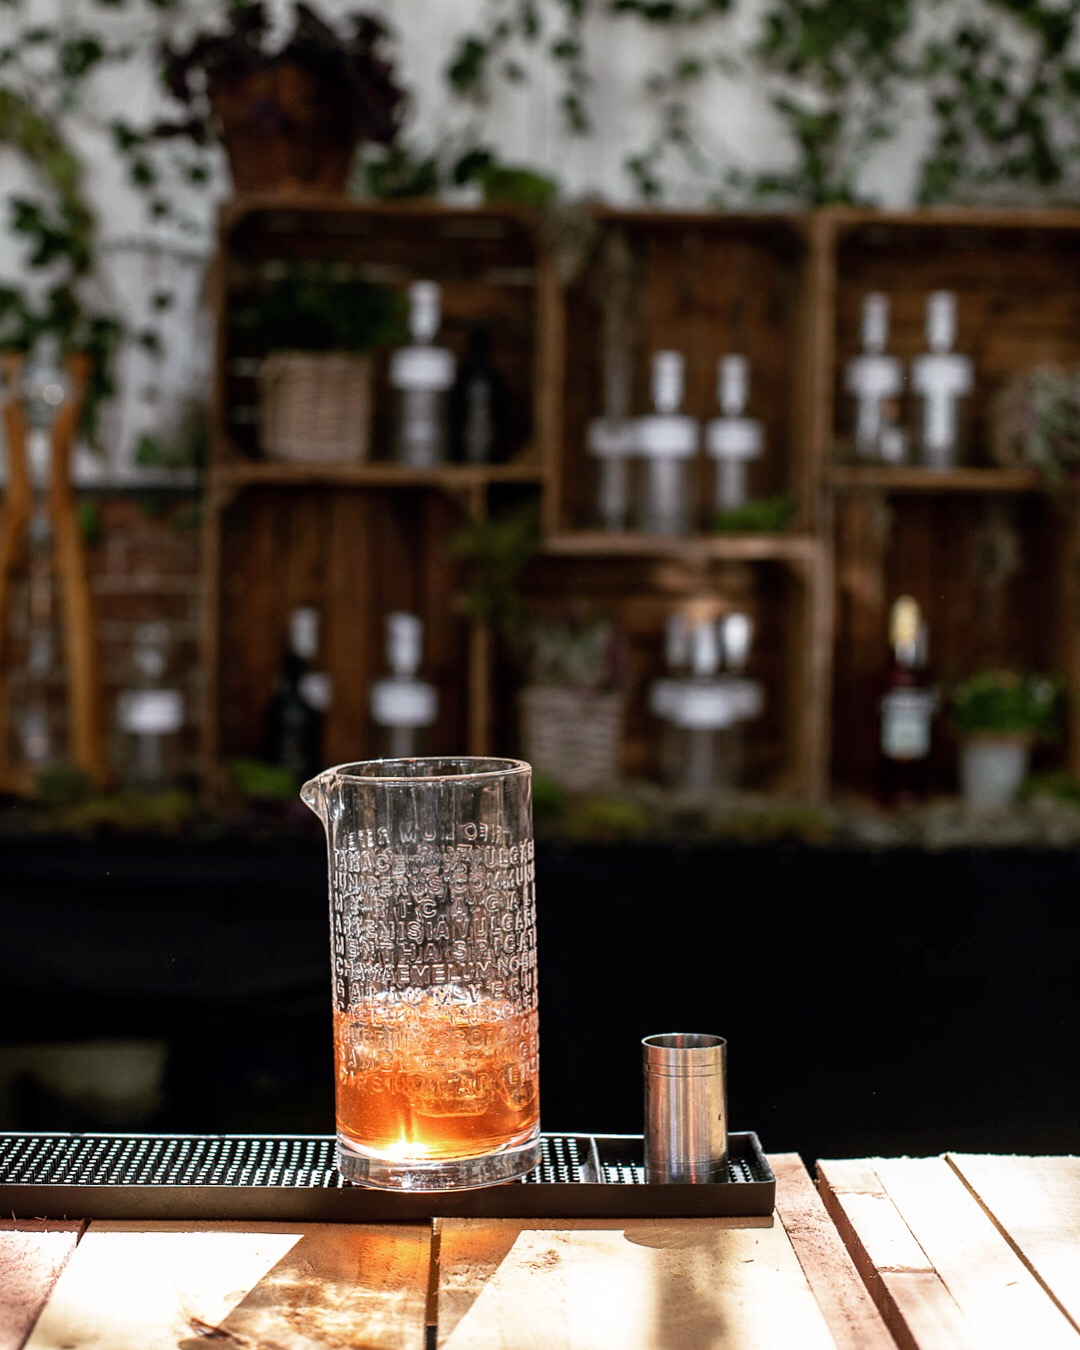 The Lost Village Festival with The Botanist Gin